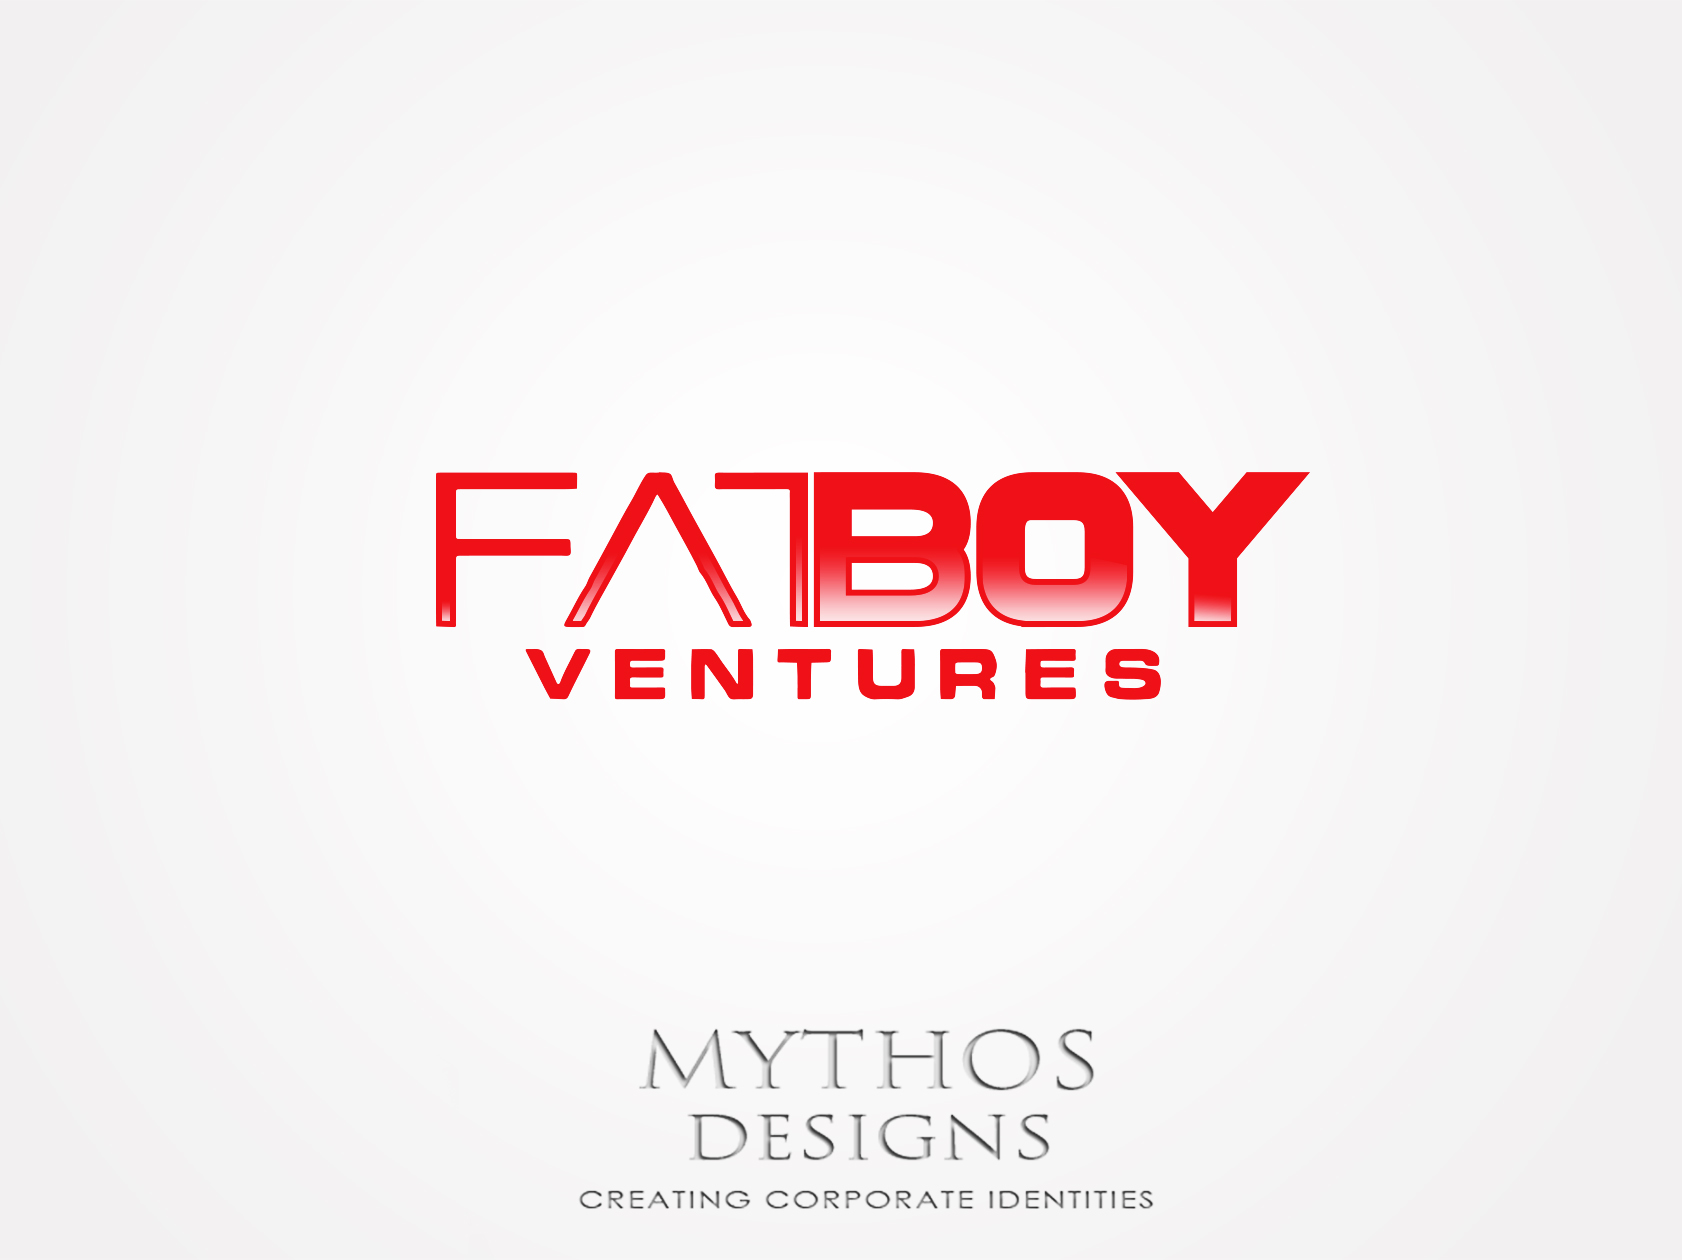 Logo Design by Mythos Designs - Entry No. 113 in the Logo Design Contest Fun Logo Design for Fat Boy Ventures.